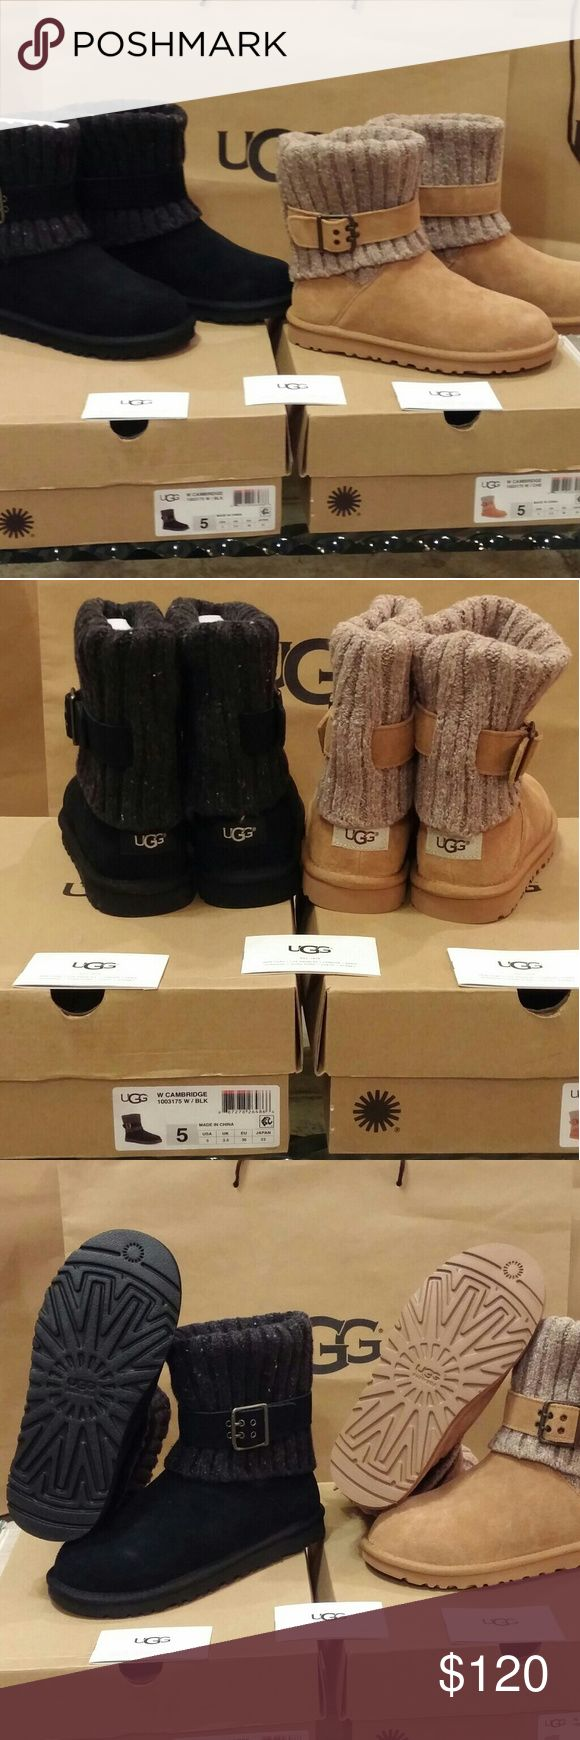 ????ORIGINAL UGG???? Cambridge ??Brand New?? Luxurious and comfortable low cut boot with a sleek buckle strap accentuates the fold-over knit cut of a a short boot lined with plush UGGpure (TM) wool, a textile made entirely crom wool but engineered to feel and wear like a genuine shearling.  Available in Chestnut.or Black. We normally wear 1 size bigger due to the thick sheep skin lining. ** NOT included with other offers or discounts. (1003175045-170) UGG Shoes Winter & Rain Boots